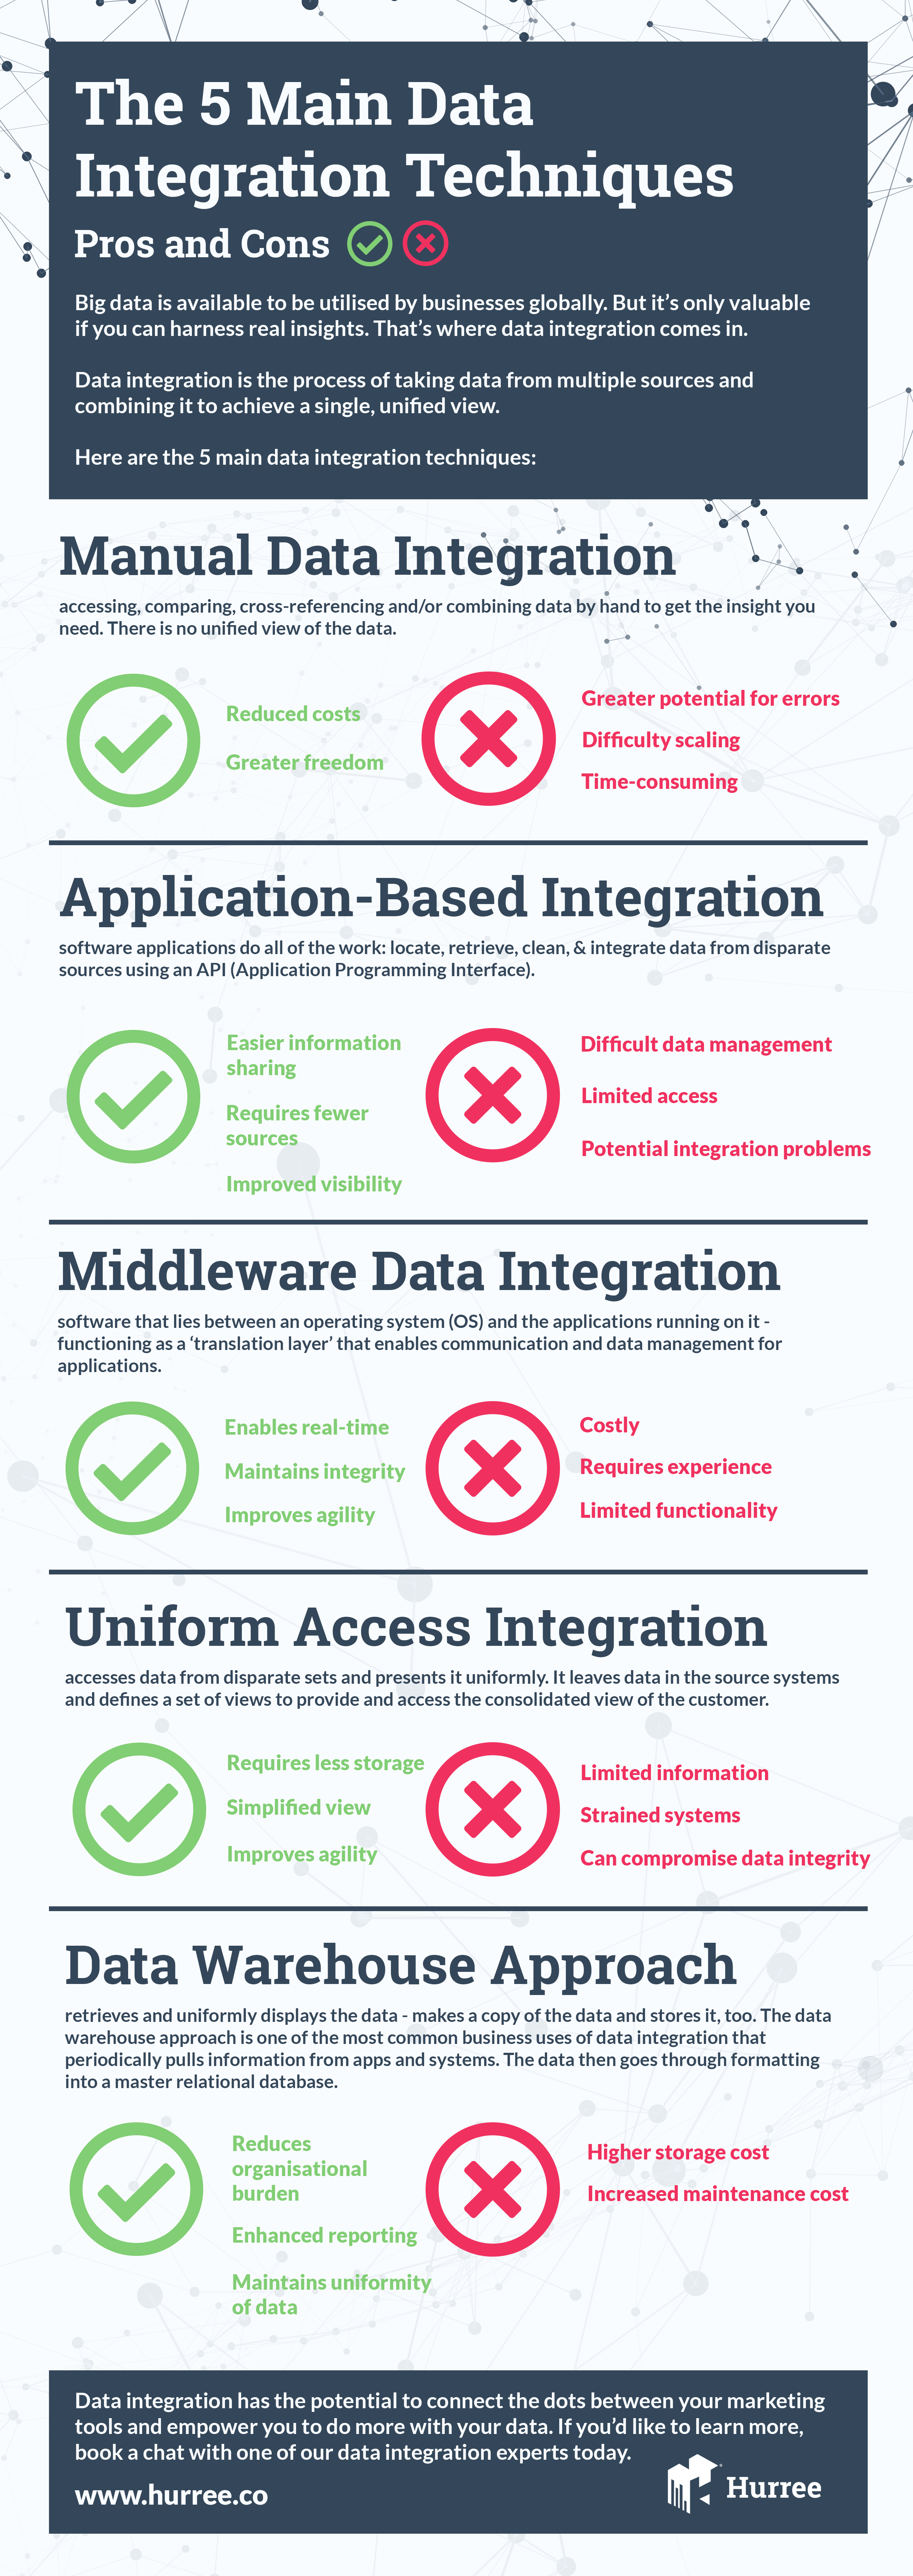 The 5 Main Data Integration Techniques: Pros and Cons [Infographic]